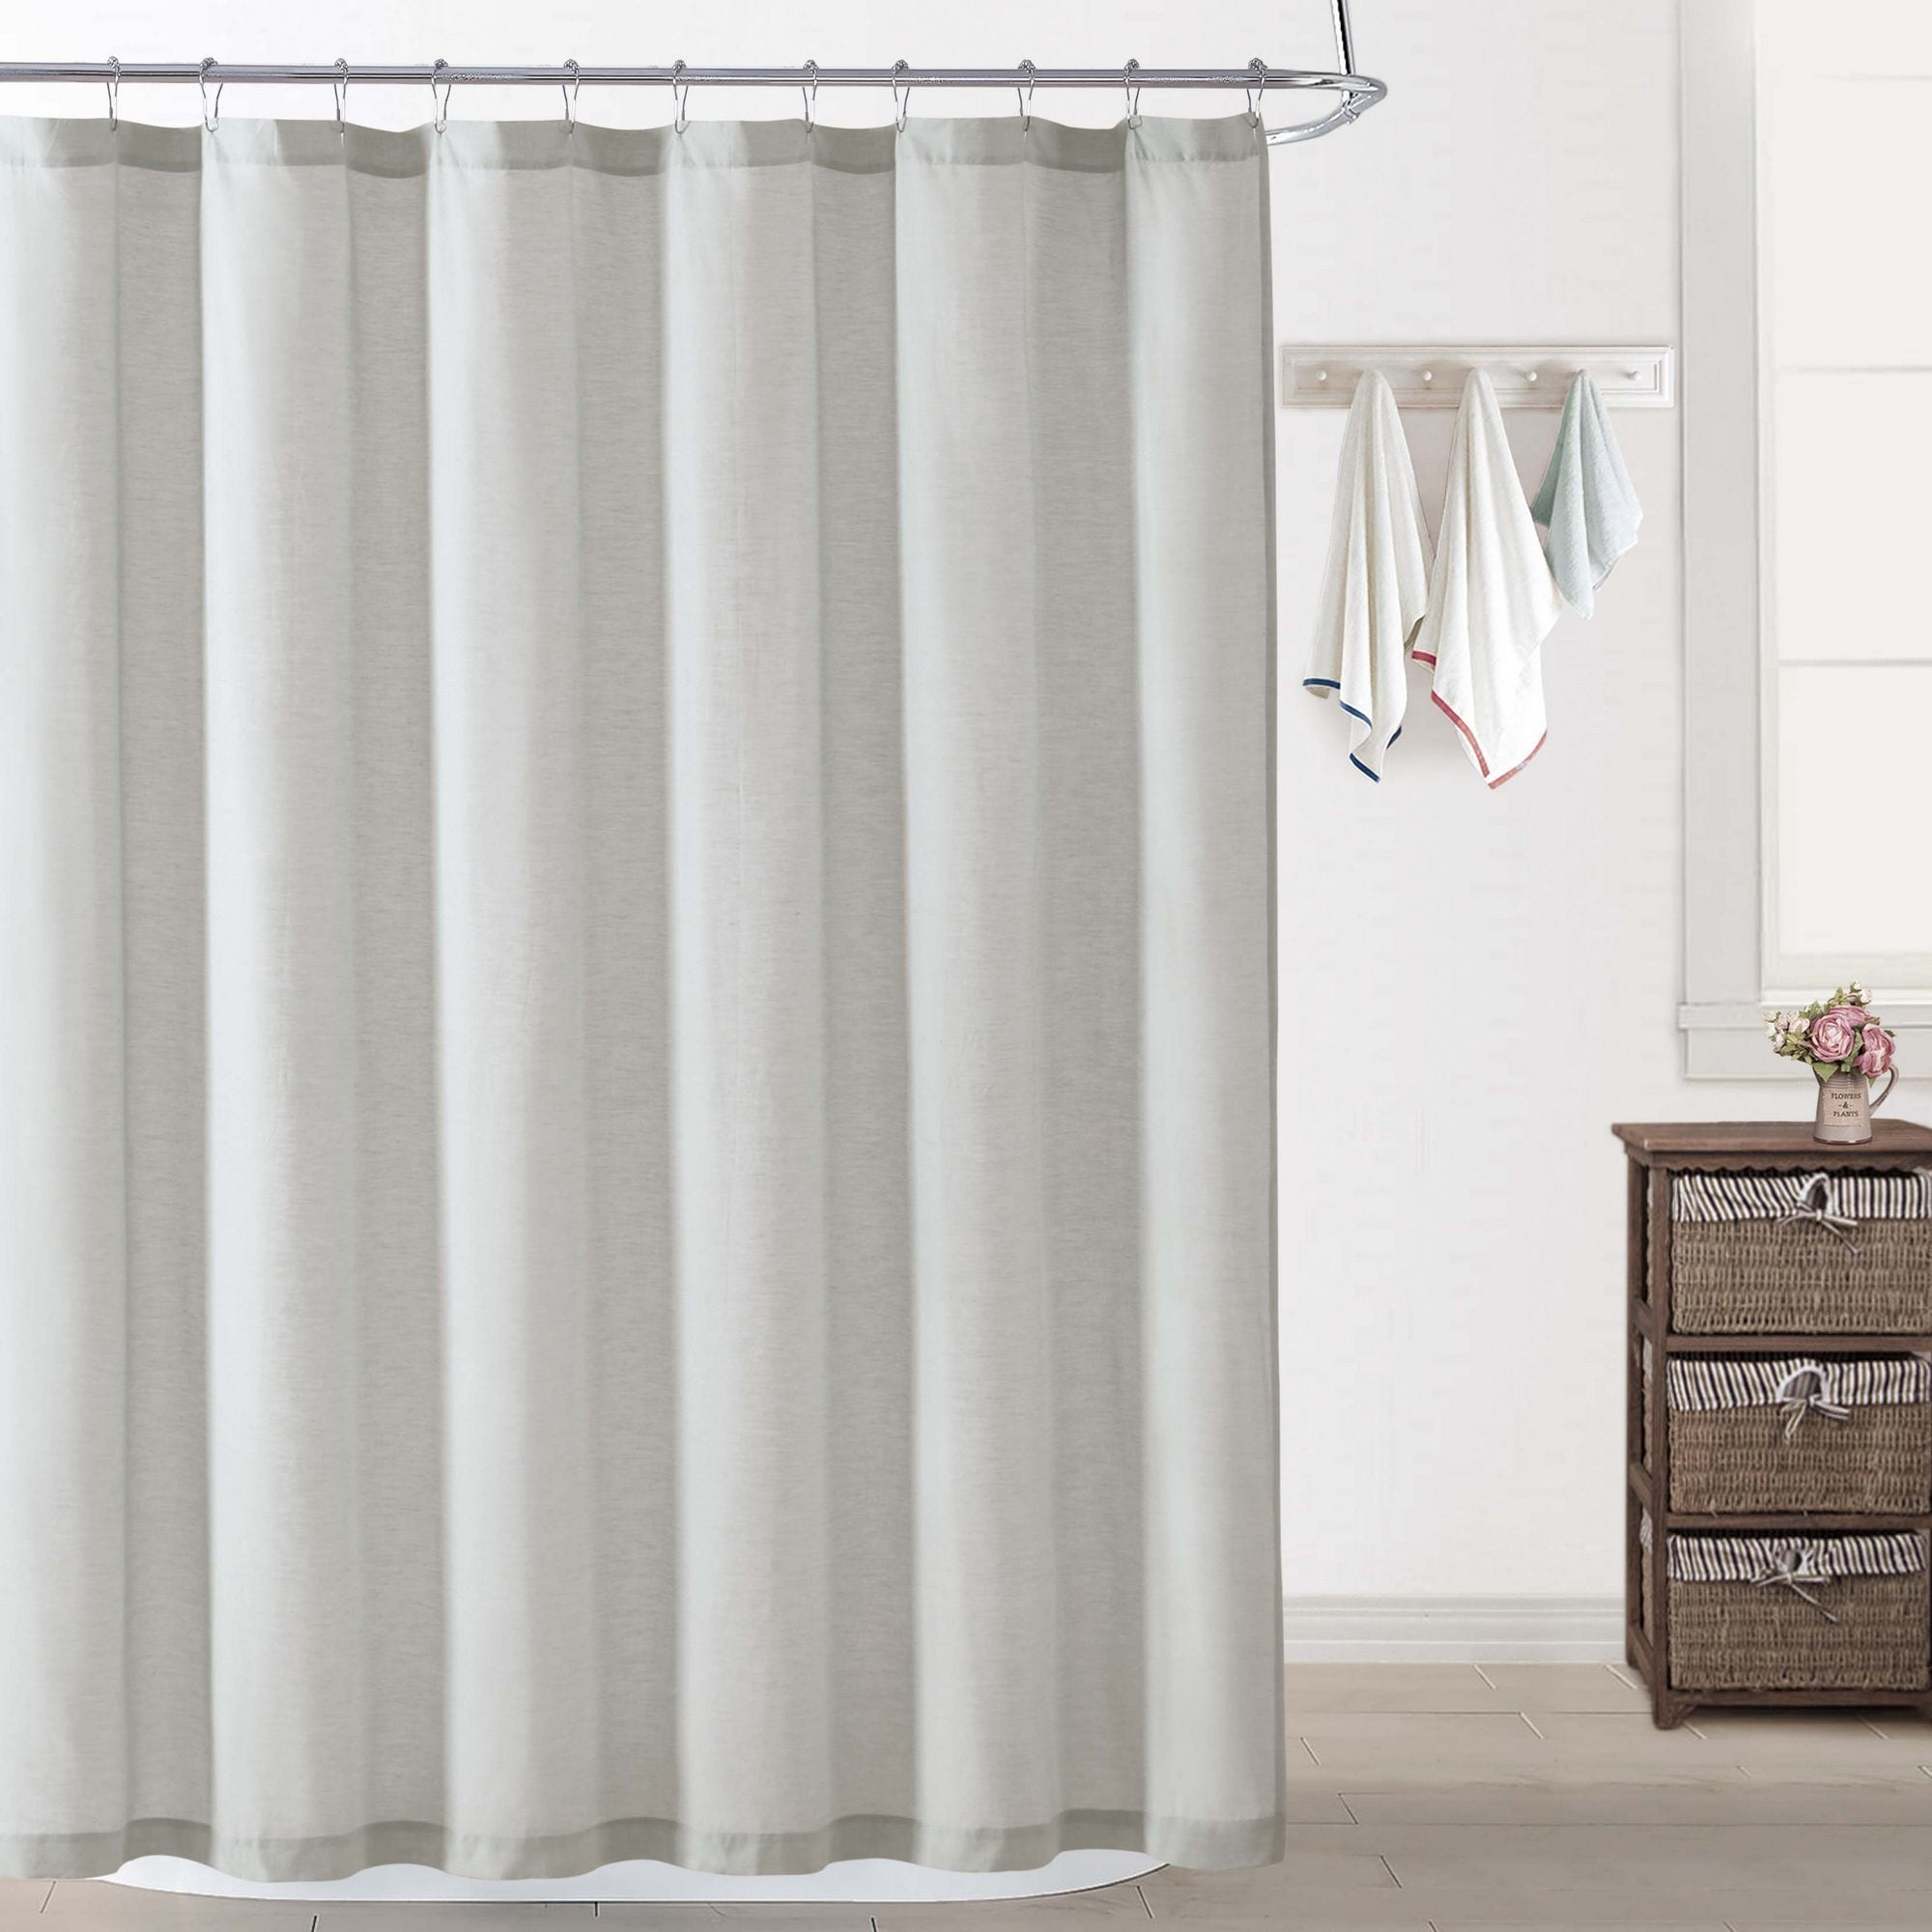 products shower curtains linen garment home lp white waffle washed curtain parachute